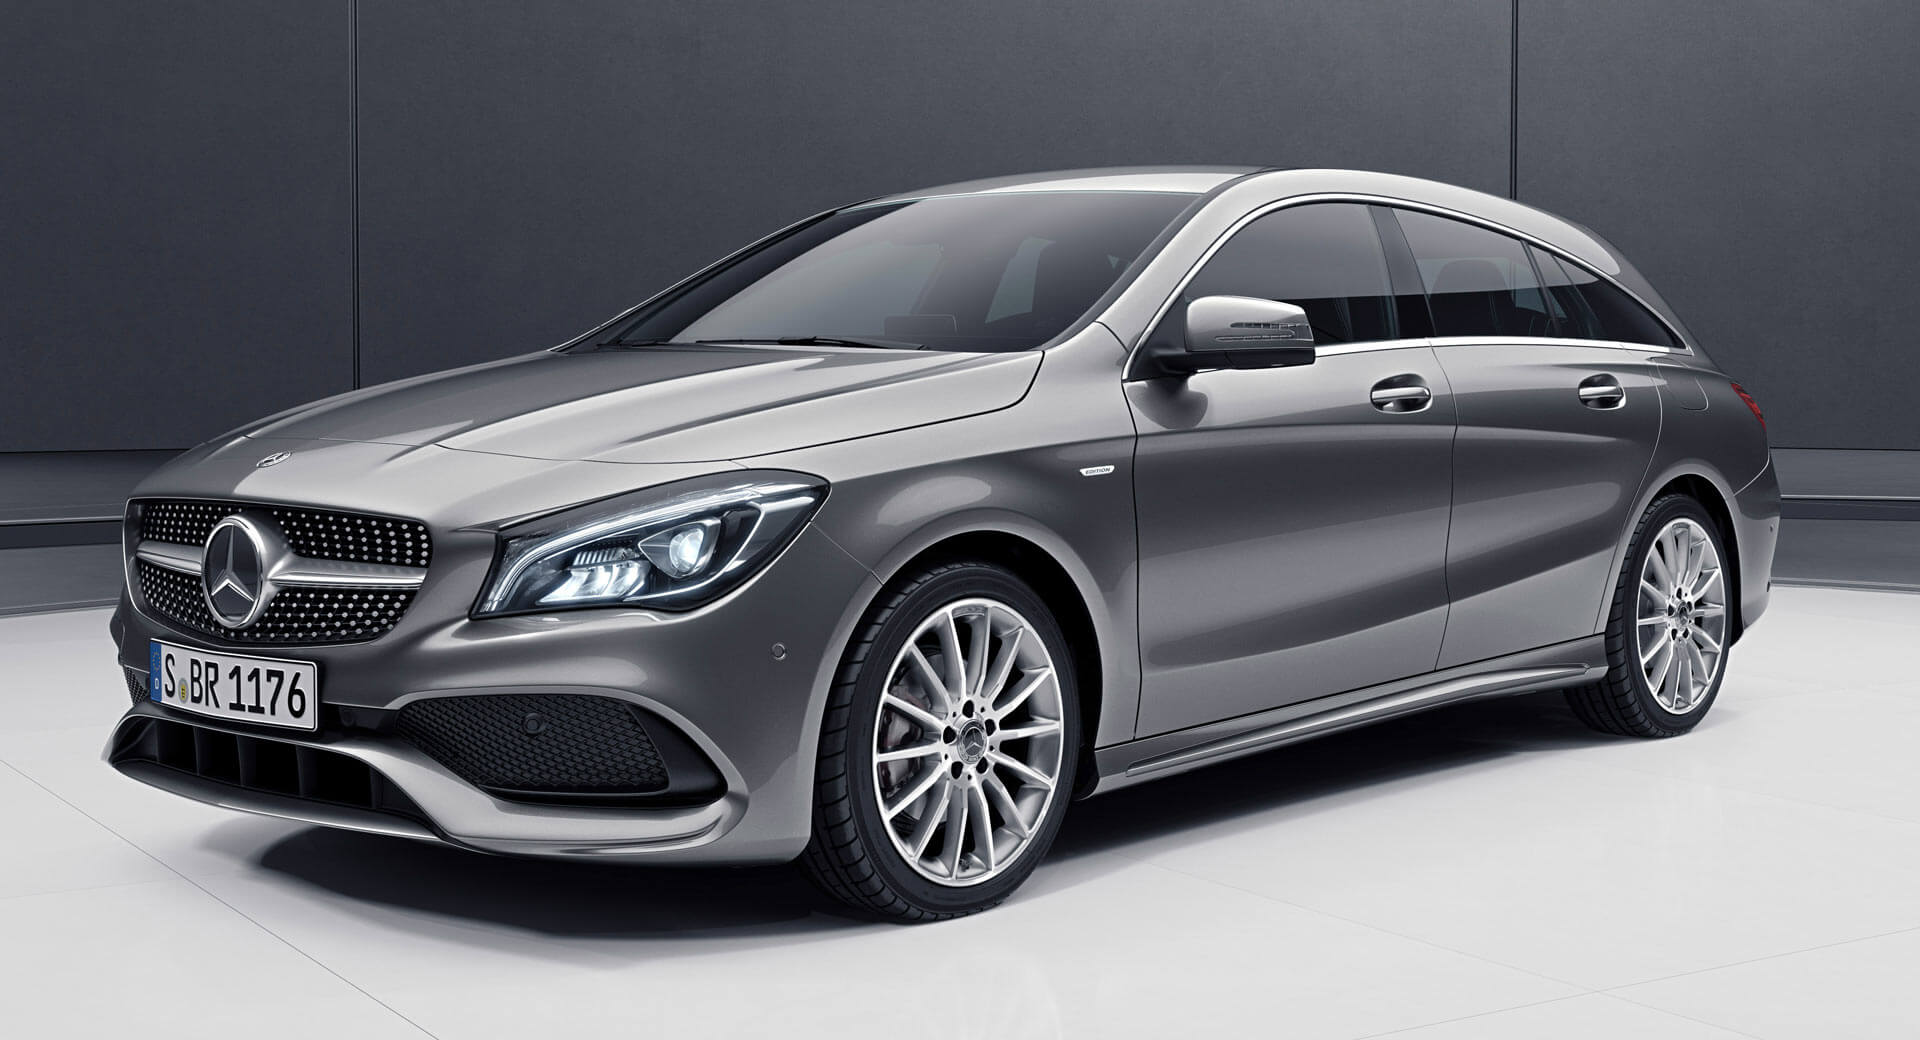 Benz Gla 250 >> Mercedes-Benz CLA Shooting Brake Gains Night Edition Packs | Carscoops